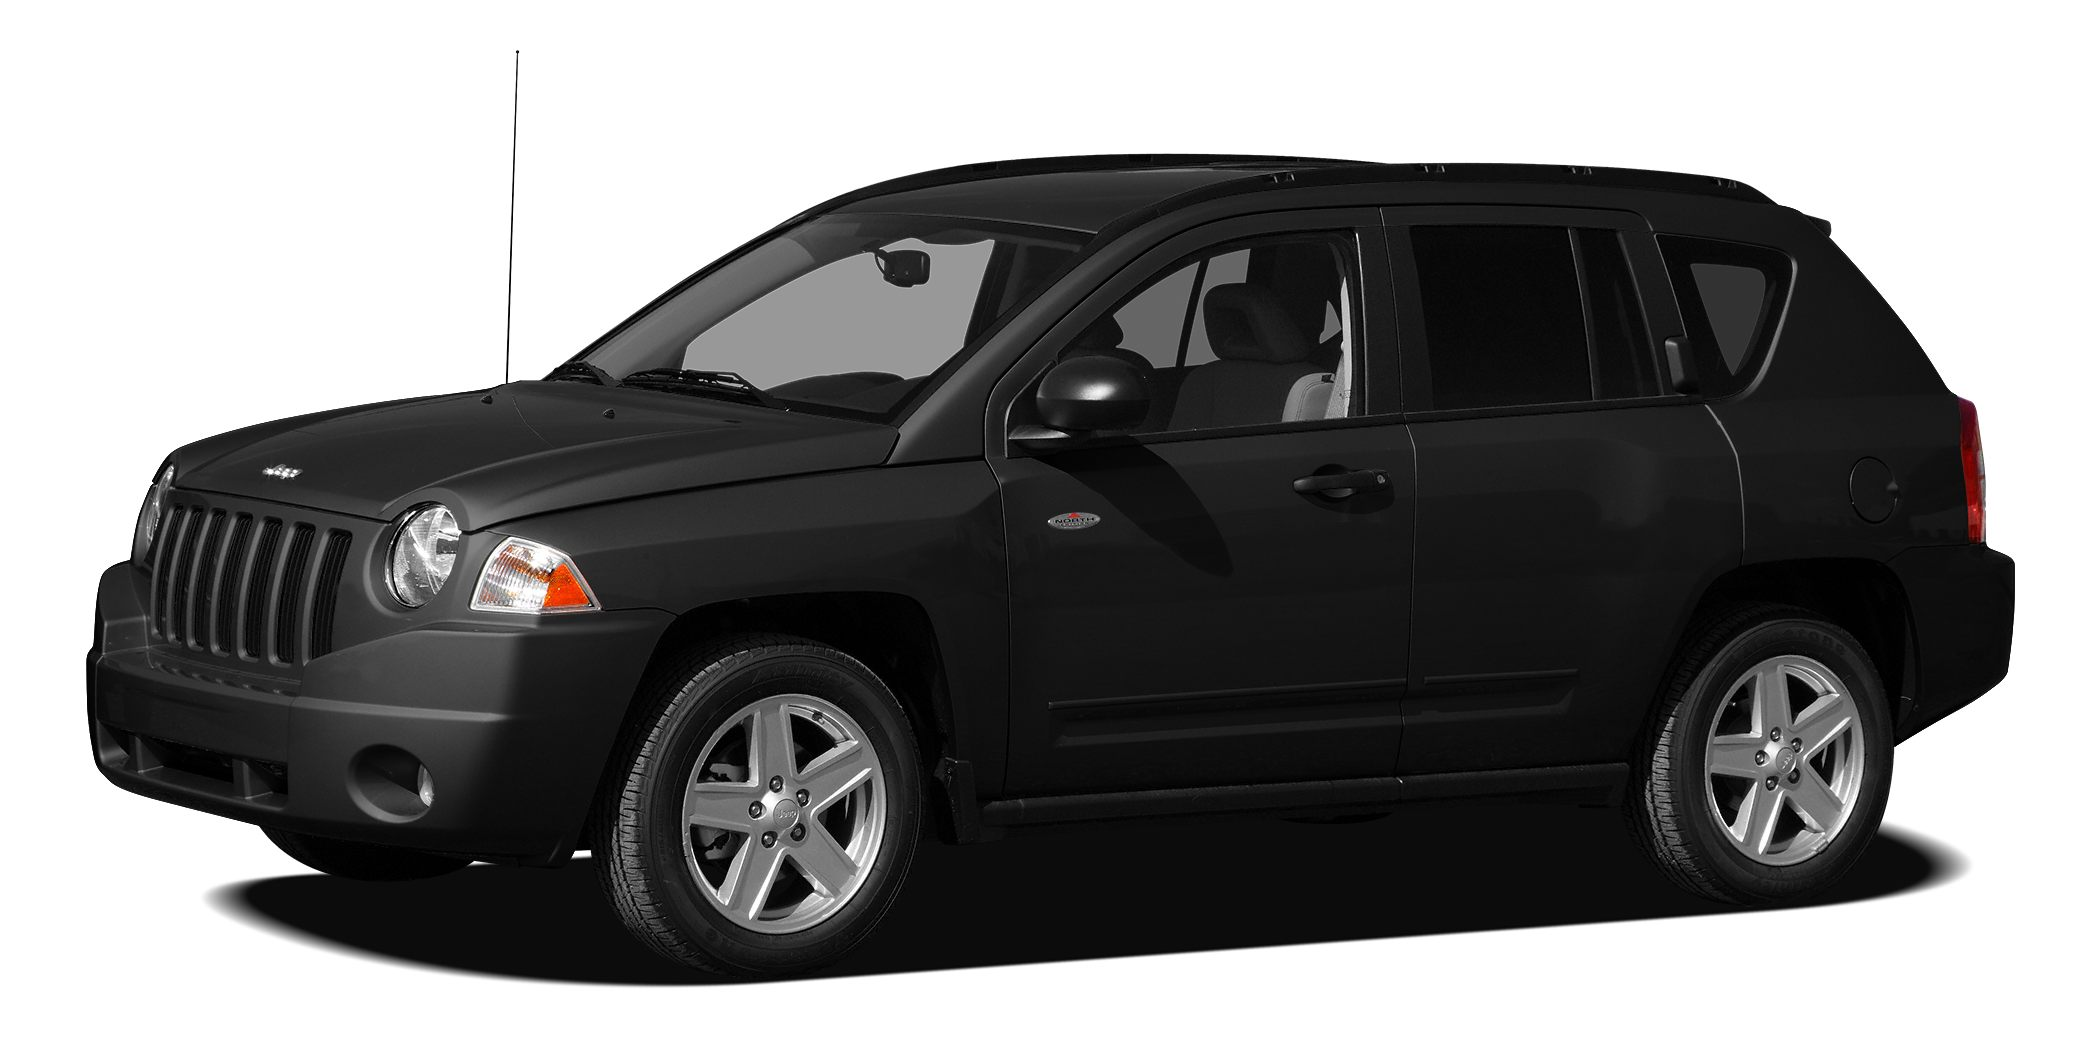 2010 Jeep Compass Sport New Arrival CARFAX 1-OWNER VEHICLE This 2010 Jeep Compass Sport has a